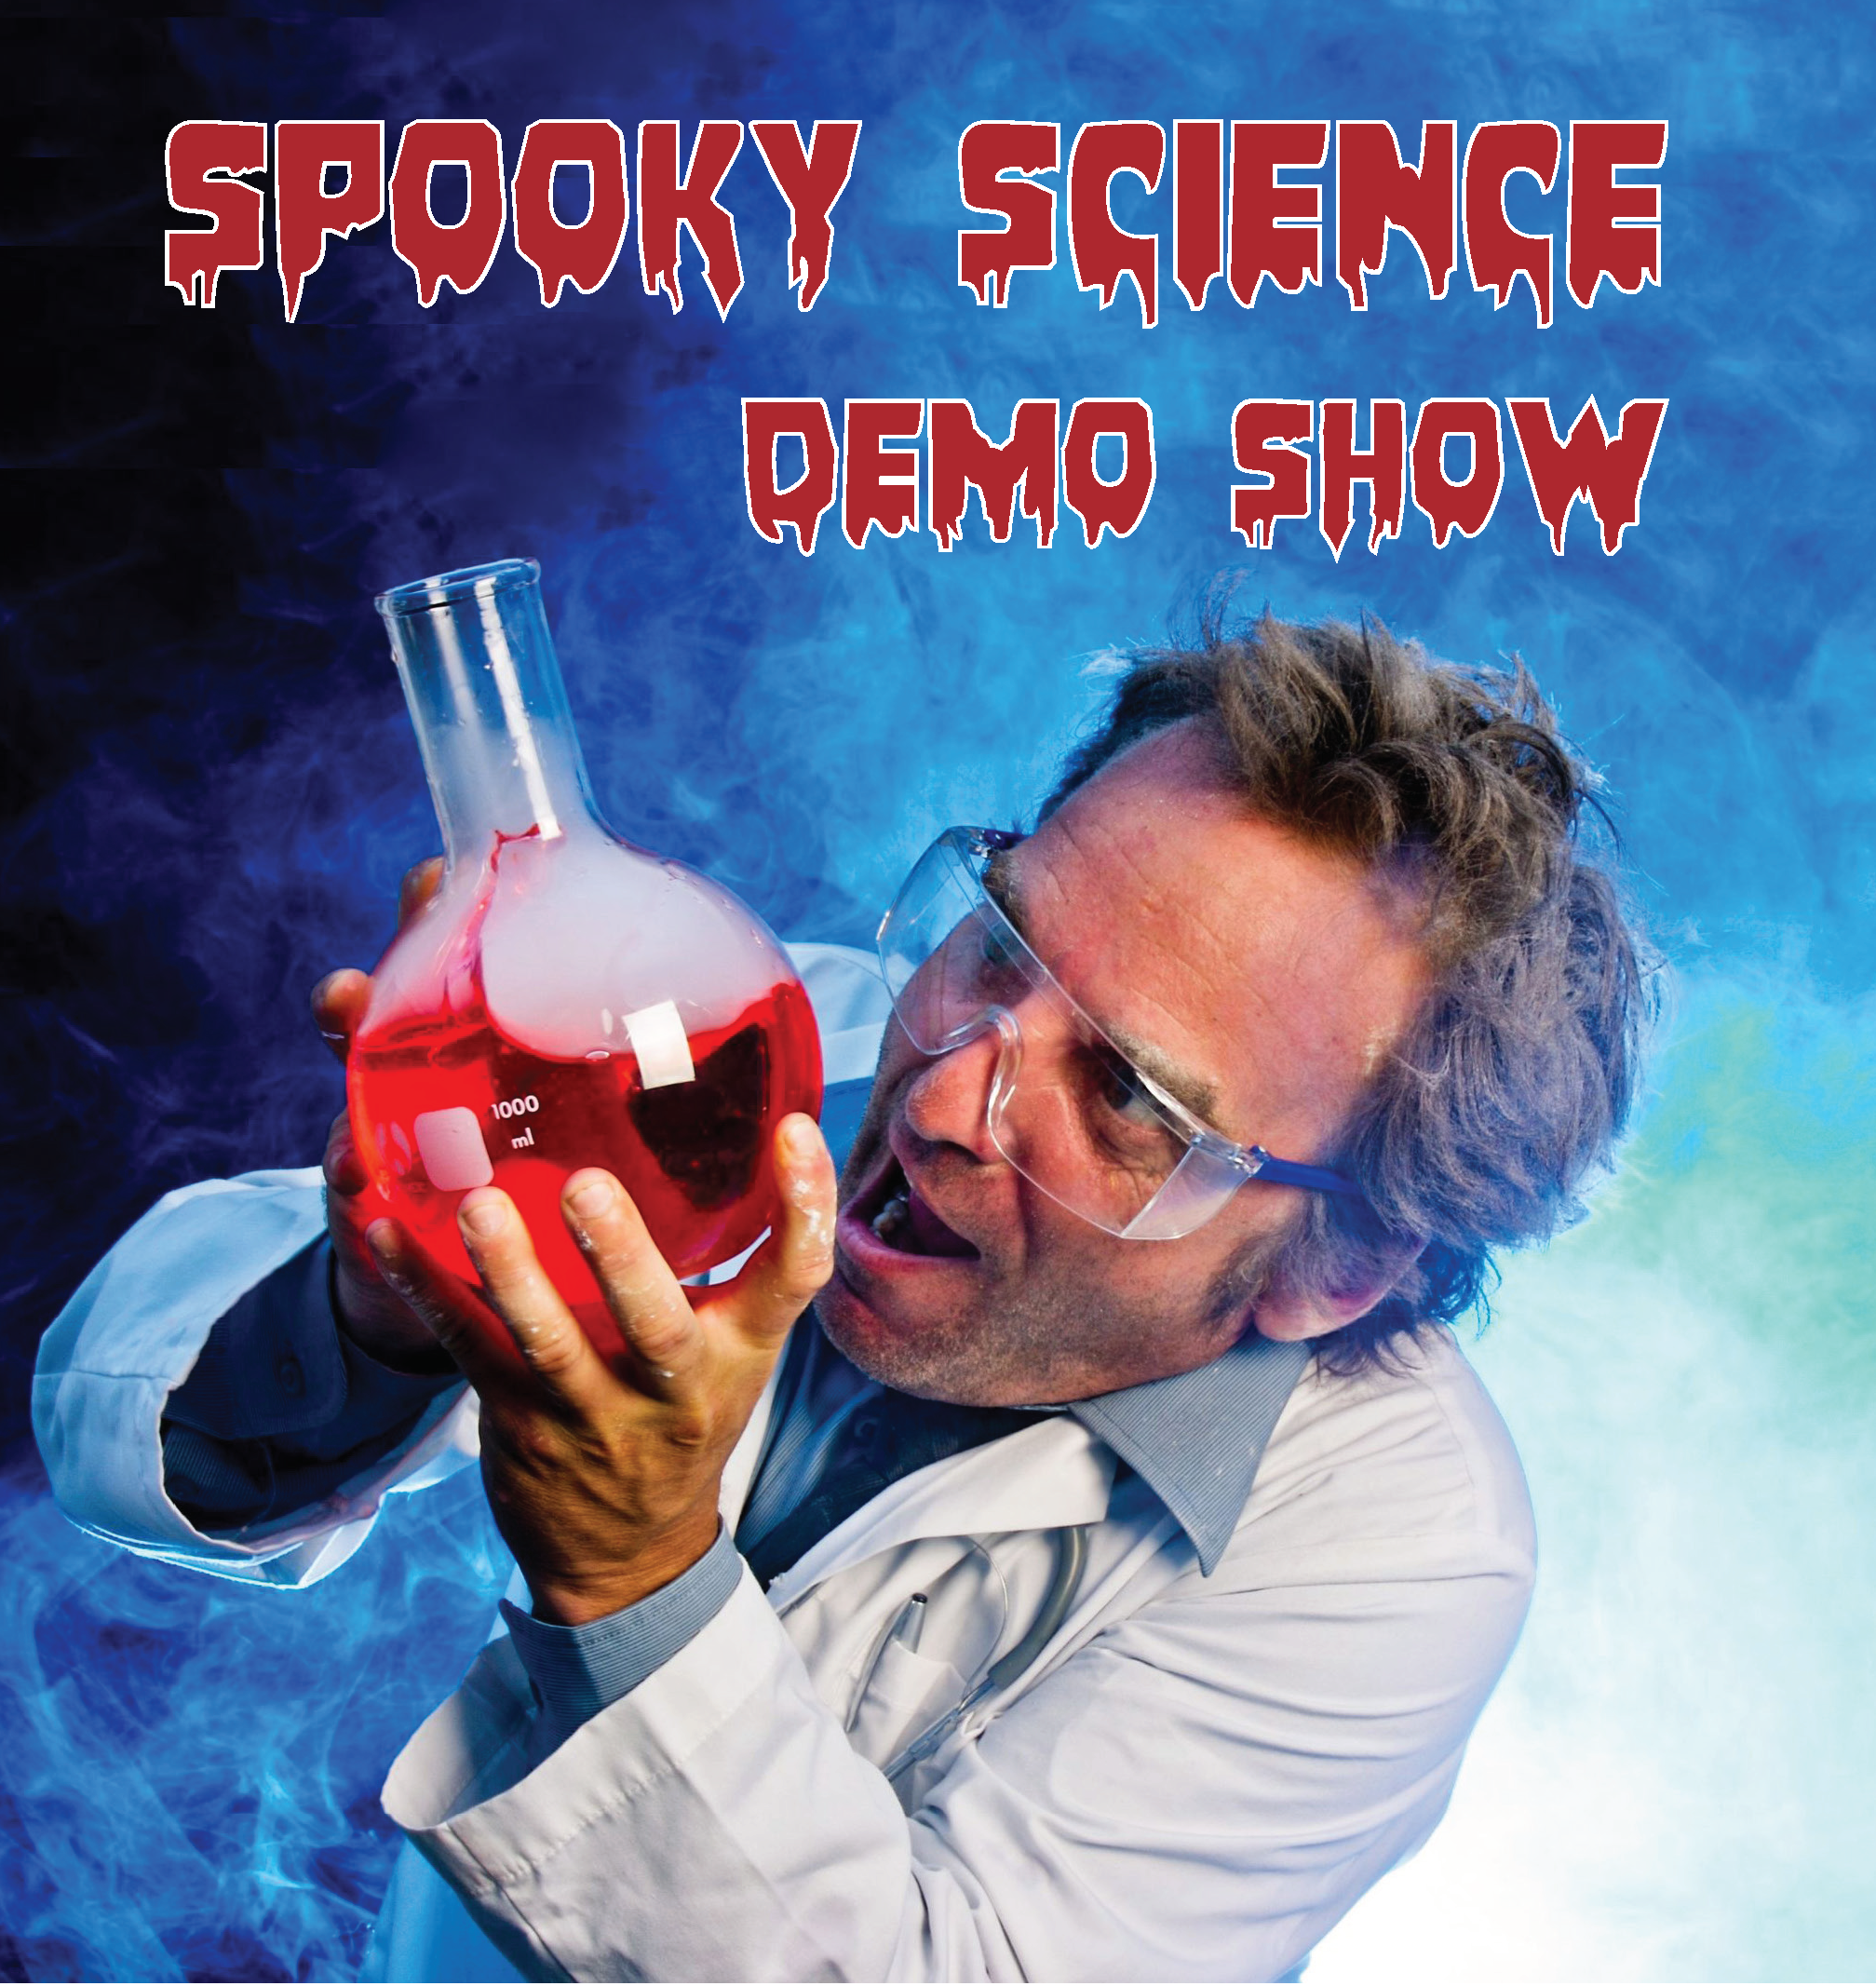 Spooky Science Demo Show [Show 1]